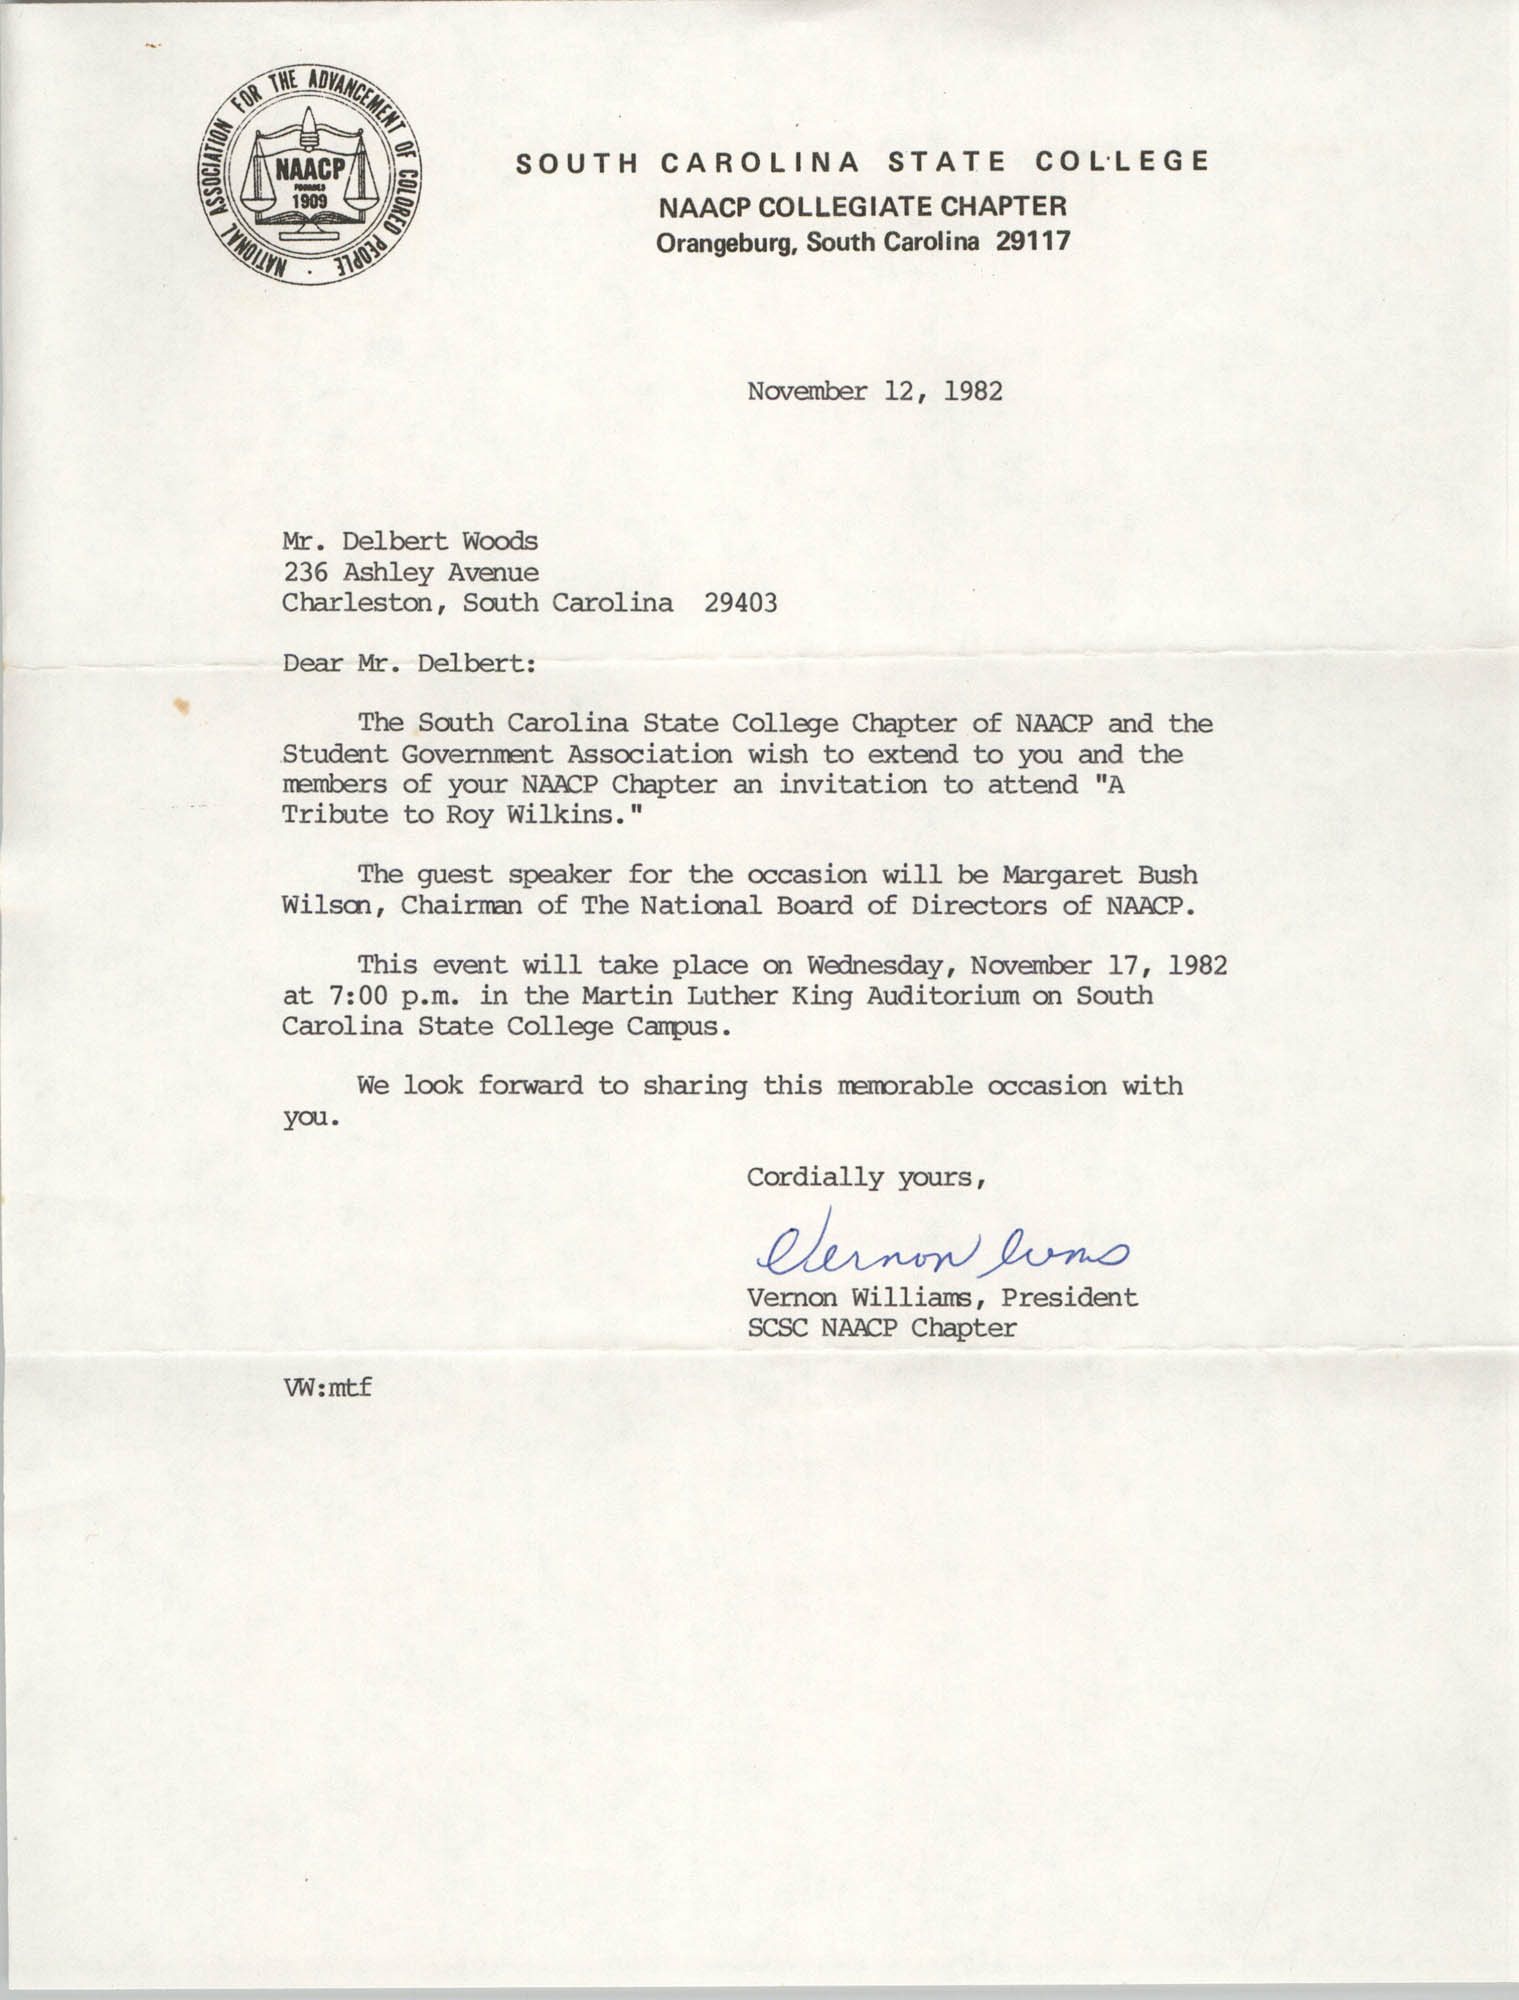 Letter from Vernon Williams to Delbert Woods, November 12, 1982